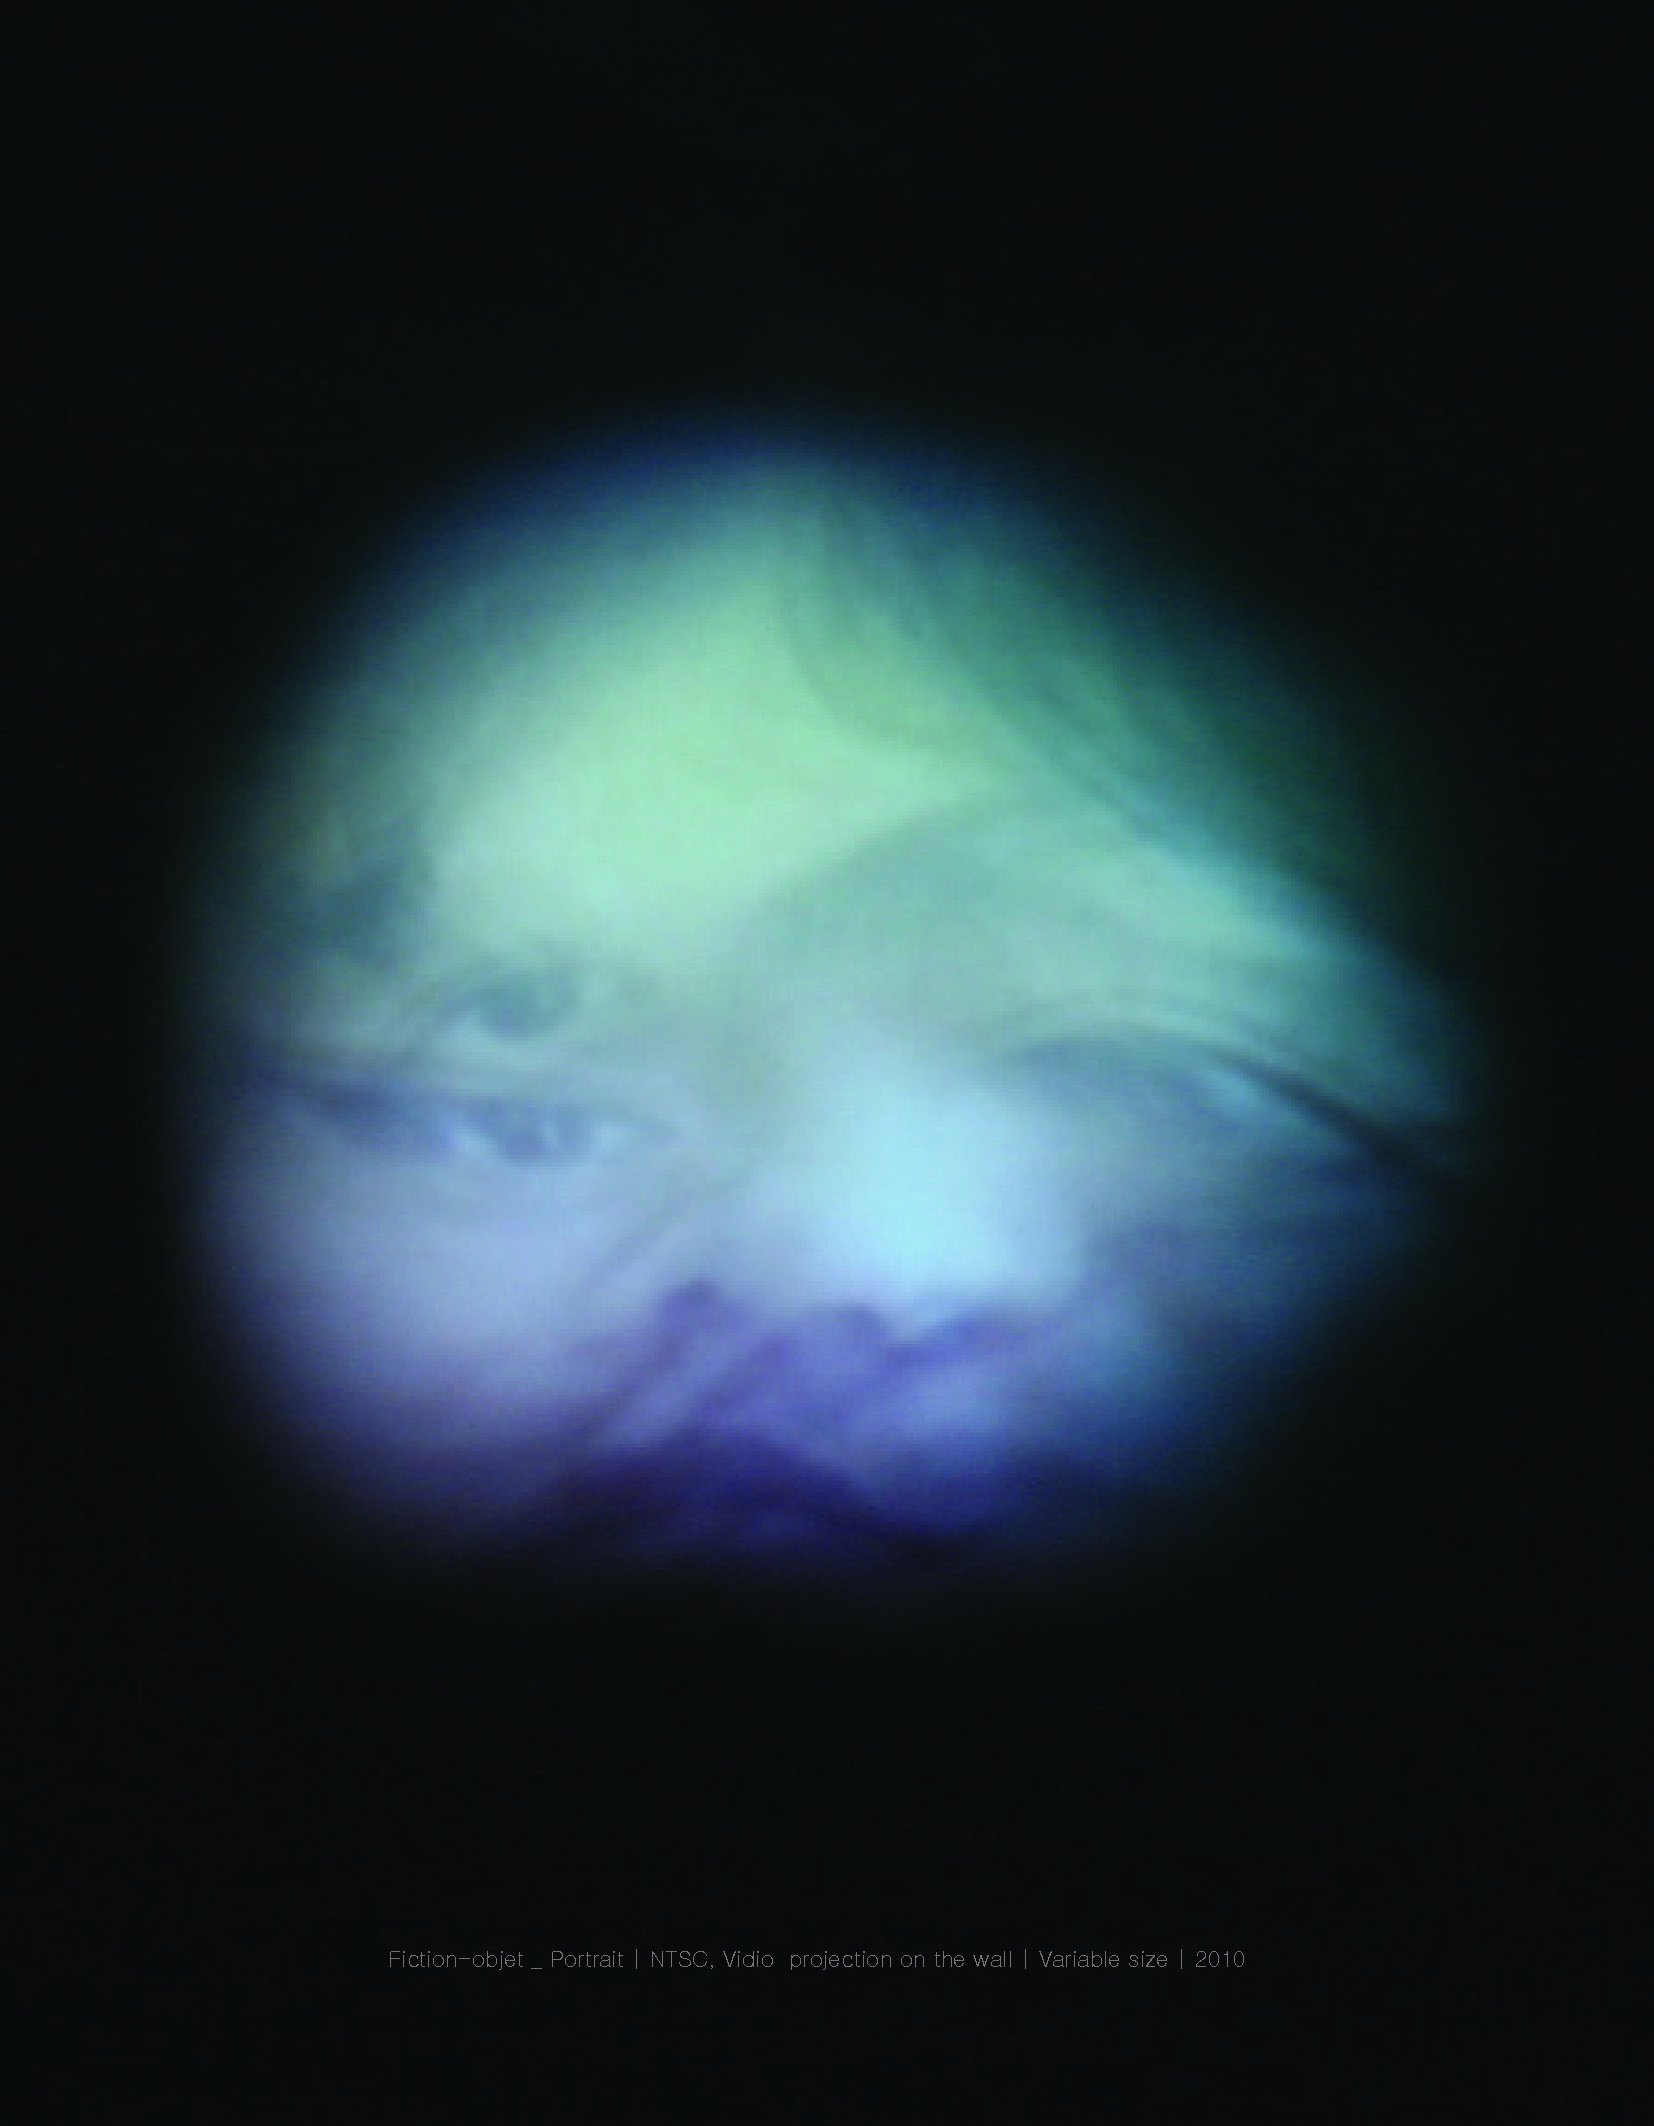 Fiction-objet _ Portrait  NTSC, Vidio projection on the wall_Variable size_2010